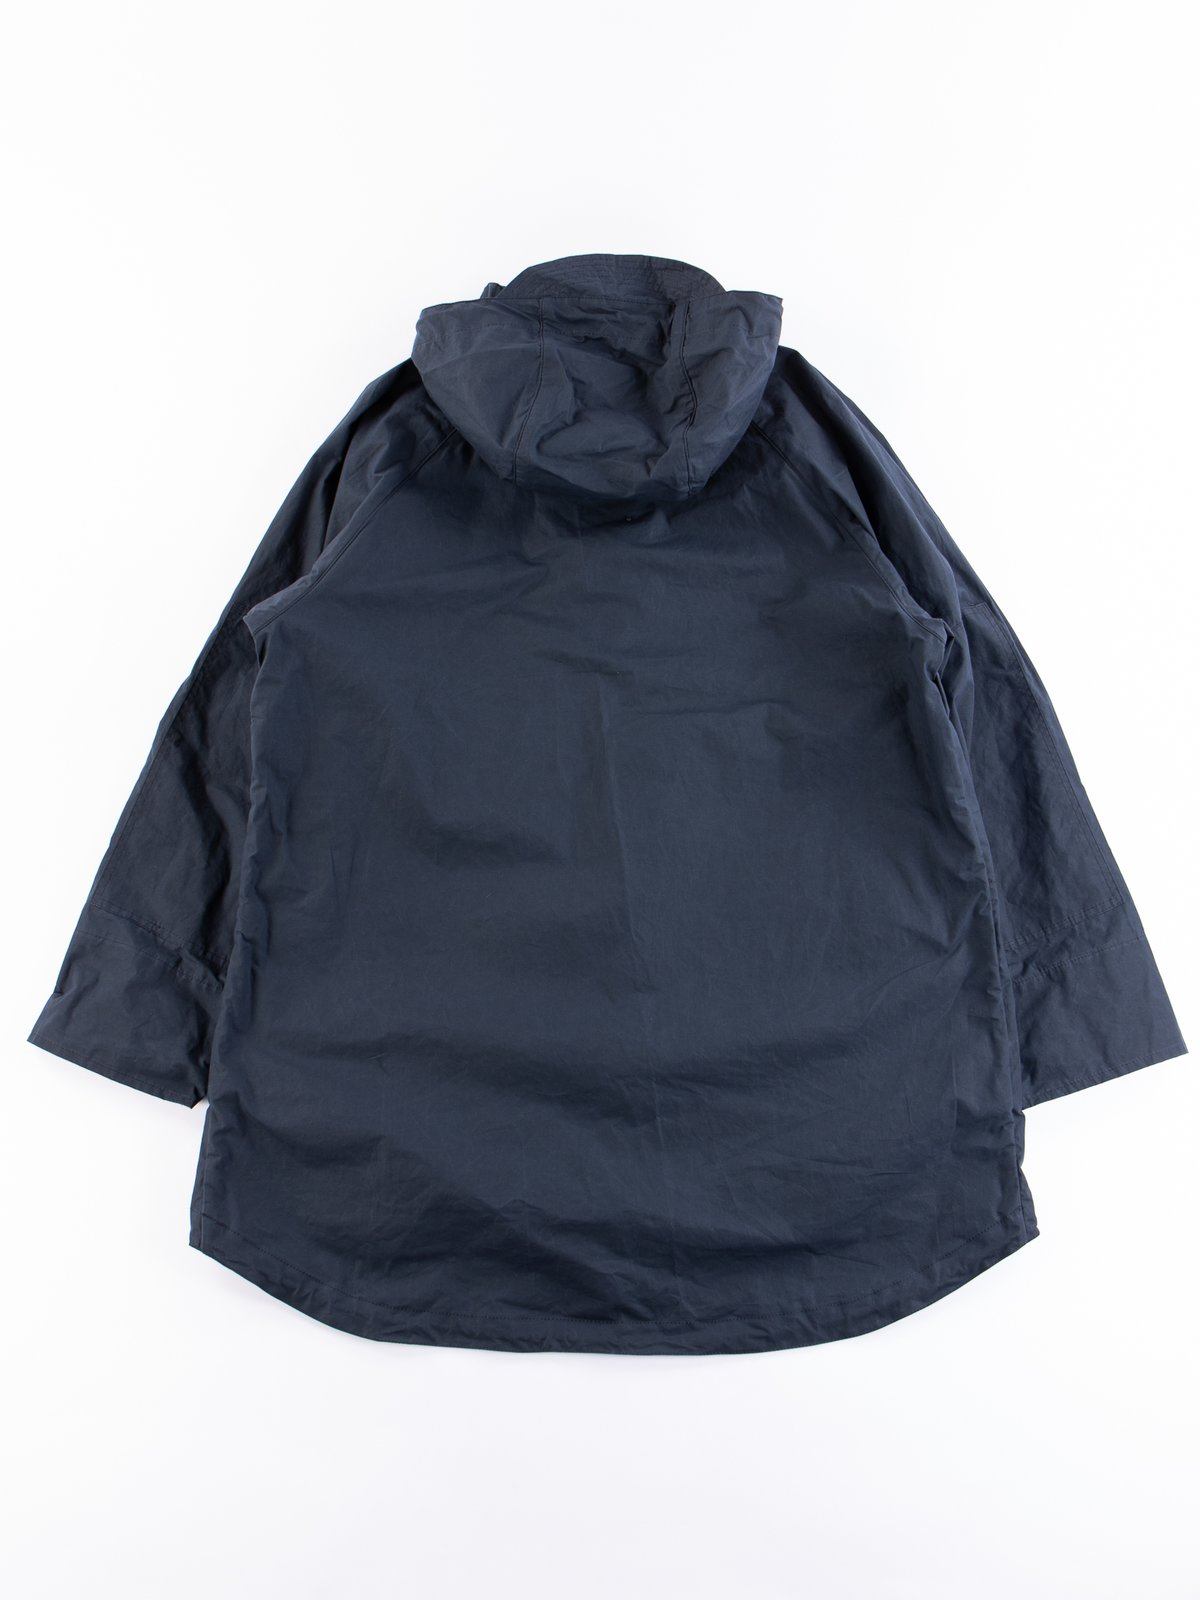 Navy Warby Jacket - Image 6